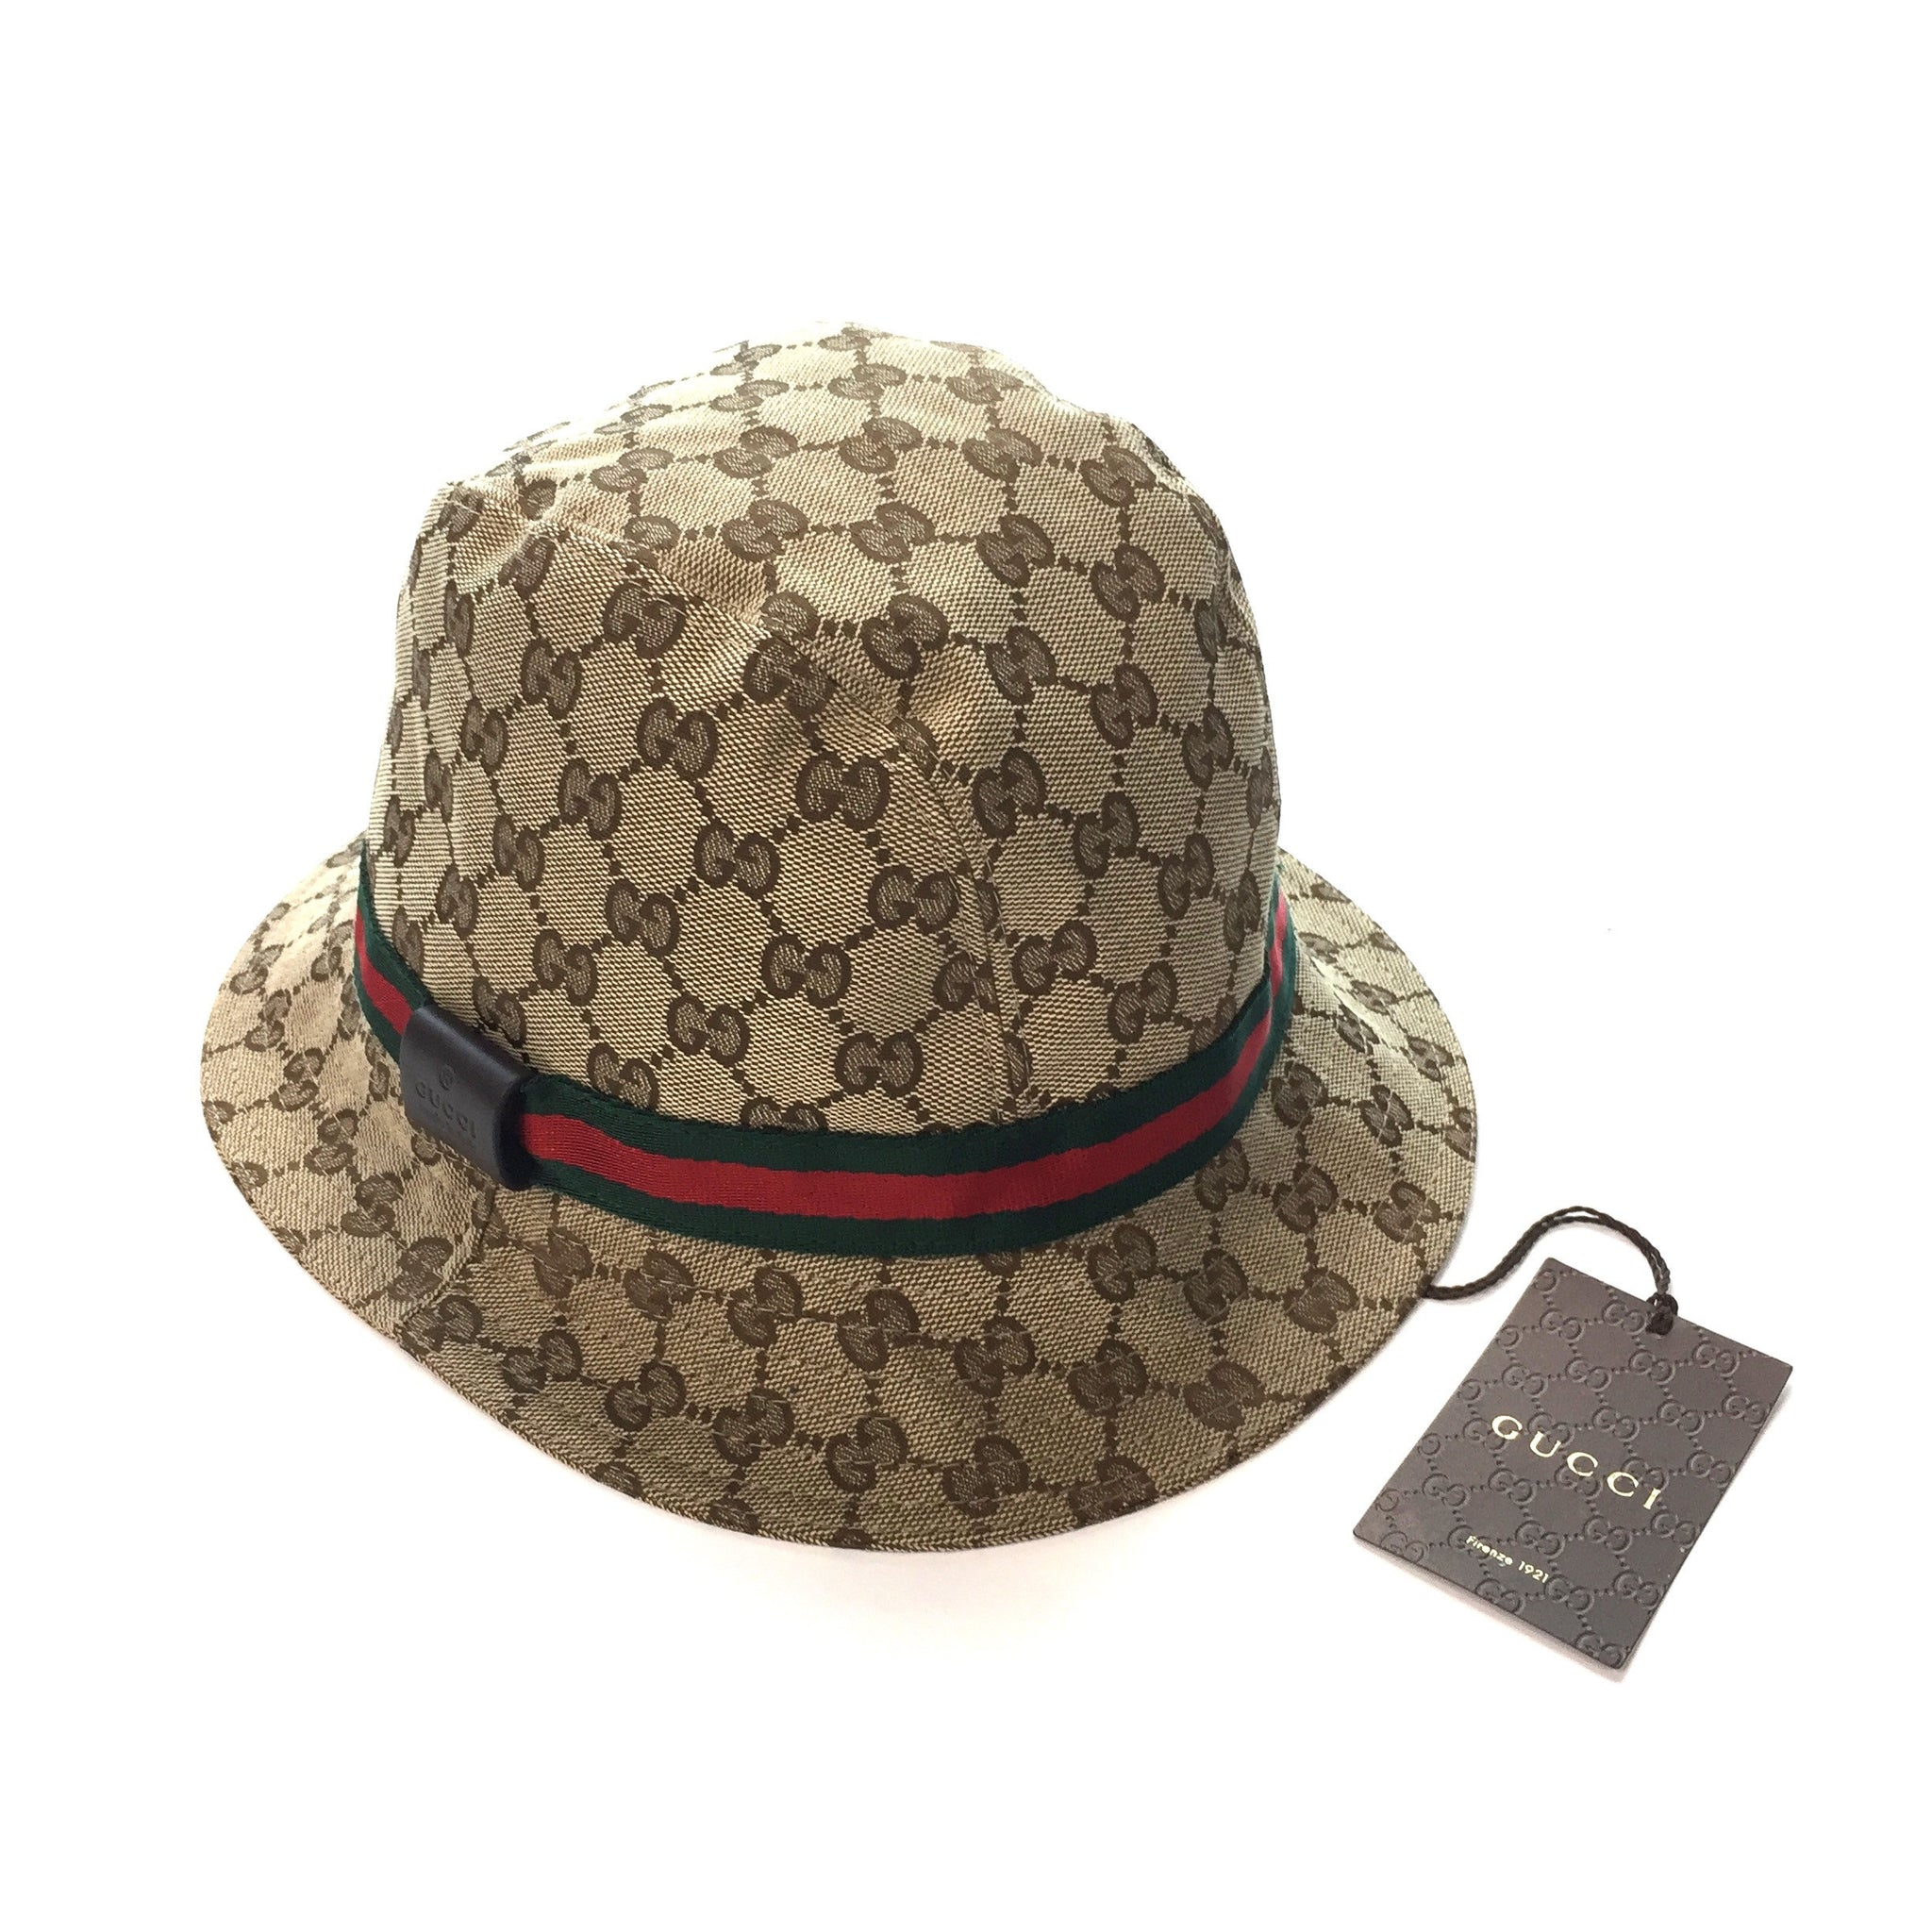 Gucci - Men s Beige Classic GG Logo Monogram Web Stribe Bucket Hat ... 1faf19be44f